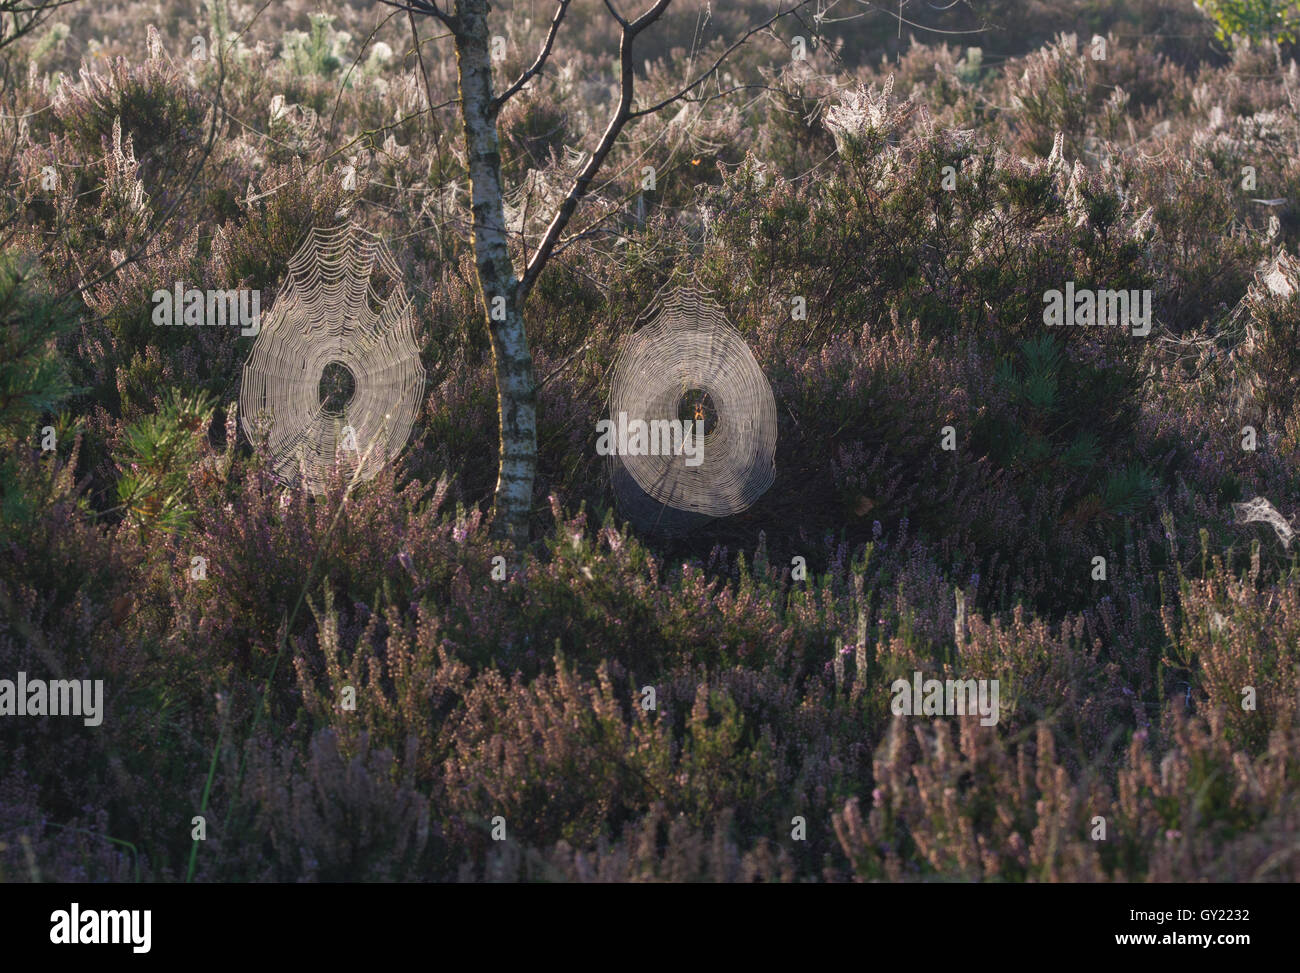 Two cobwebs or spider's webs on heathland in early morning light - Stock Image